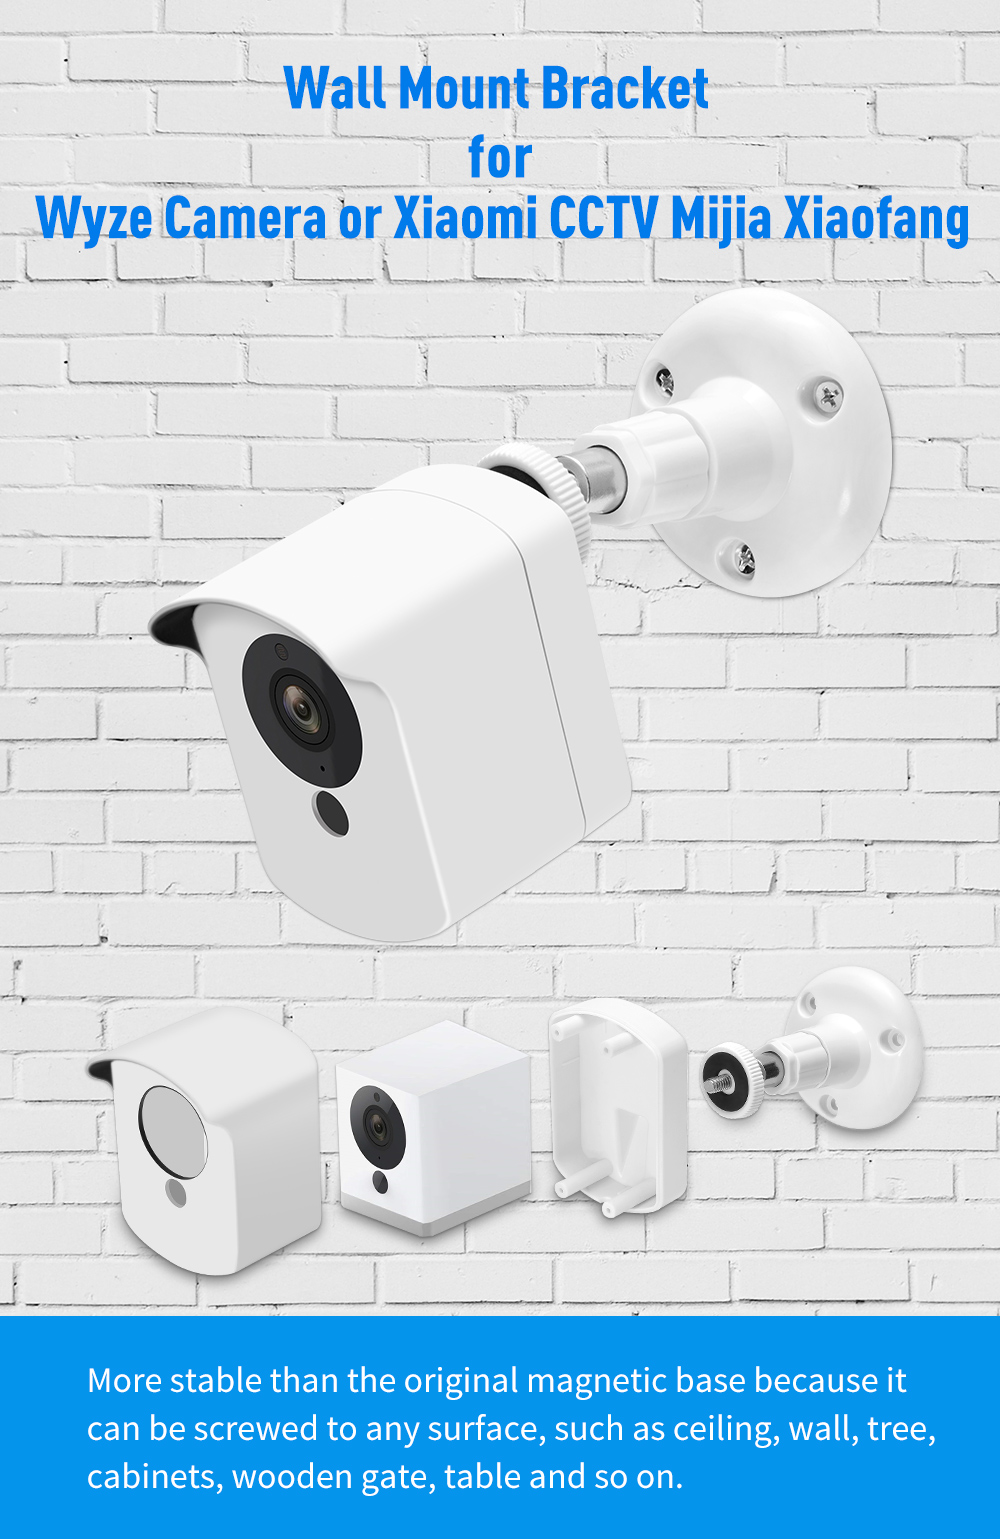 Wyze Camera Wall Mount Bracket with Protective Cover Indoor Outdoor Use for  Xiaomi CCTV Mijia Xiaofang Camera and Wyze Cam 1080p